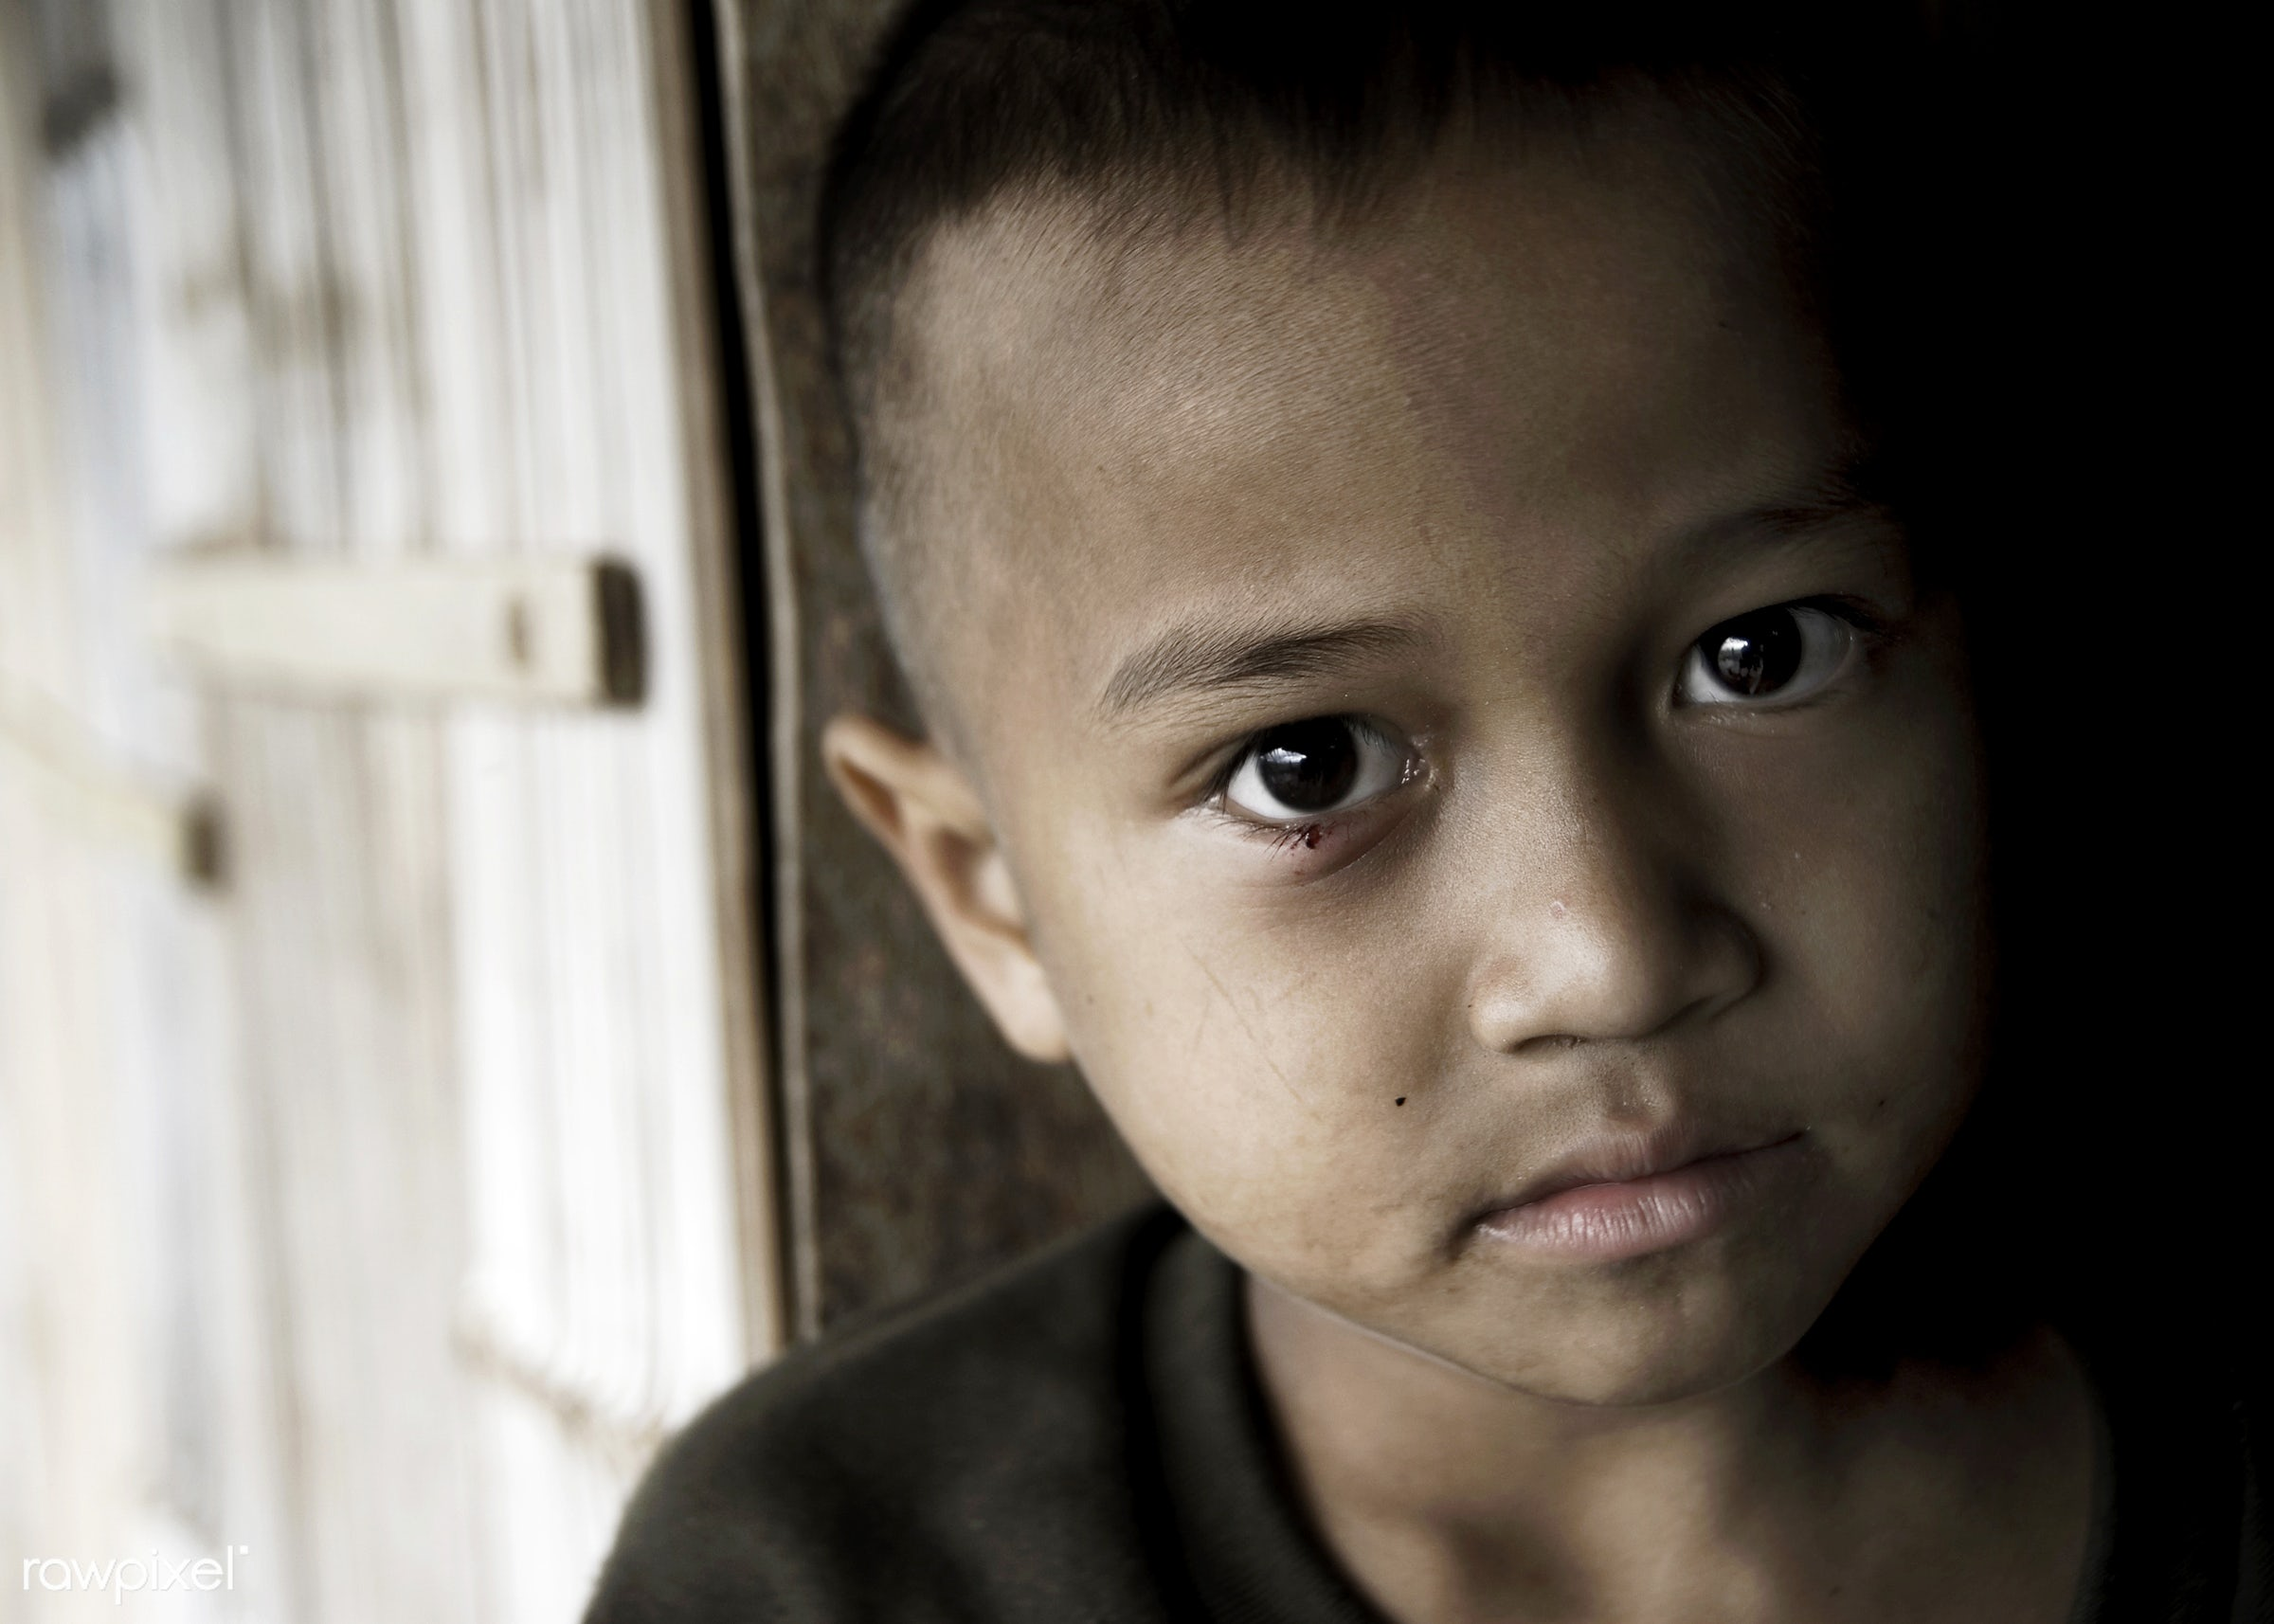 asian, boy, cheerful, child, childhood, emotion, expression, face, little boys, male, people, portrait, thoughtful